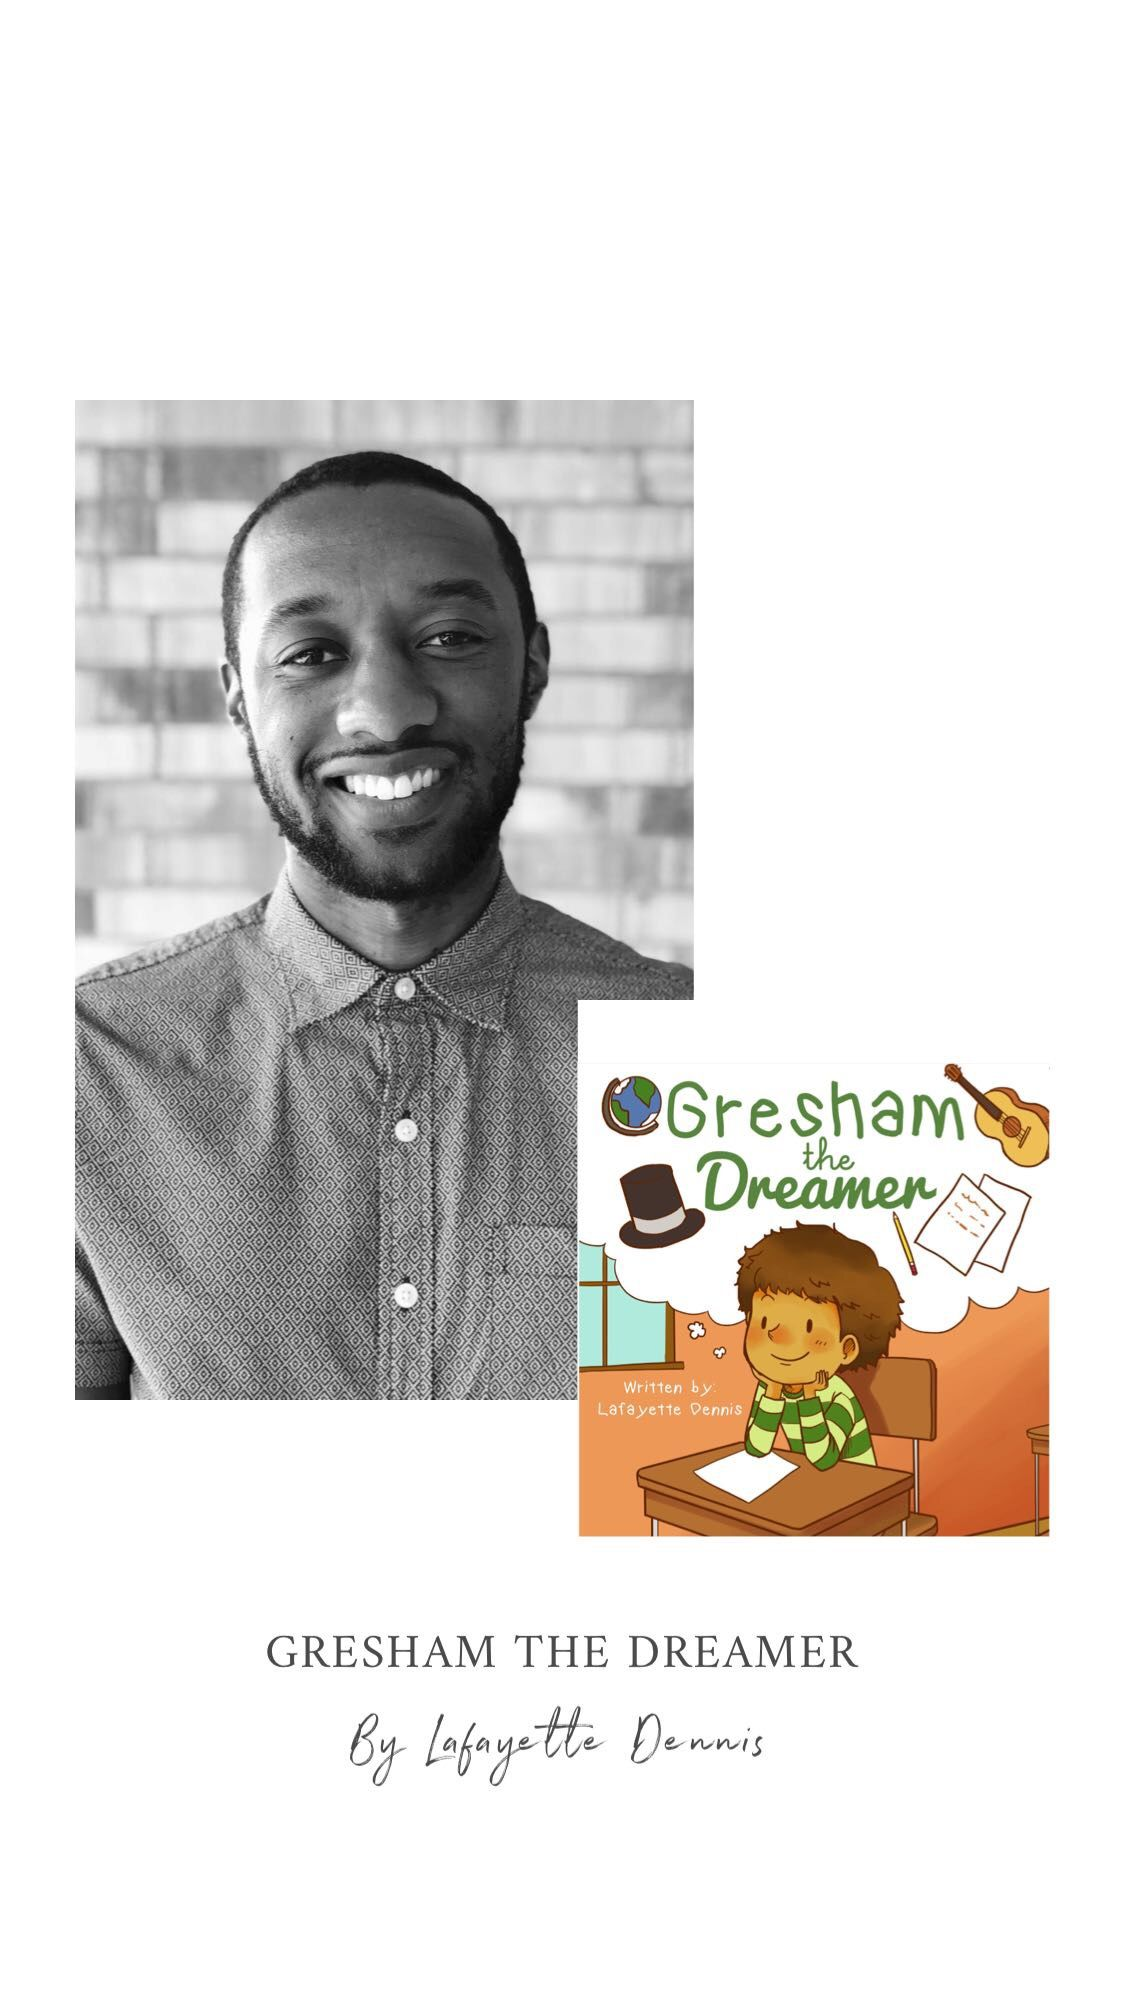 Gresham The Dreamer, the children's book that every grown up should read